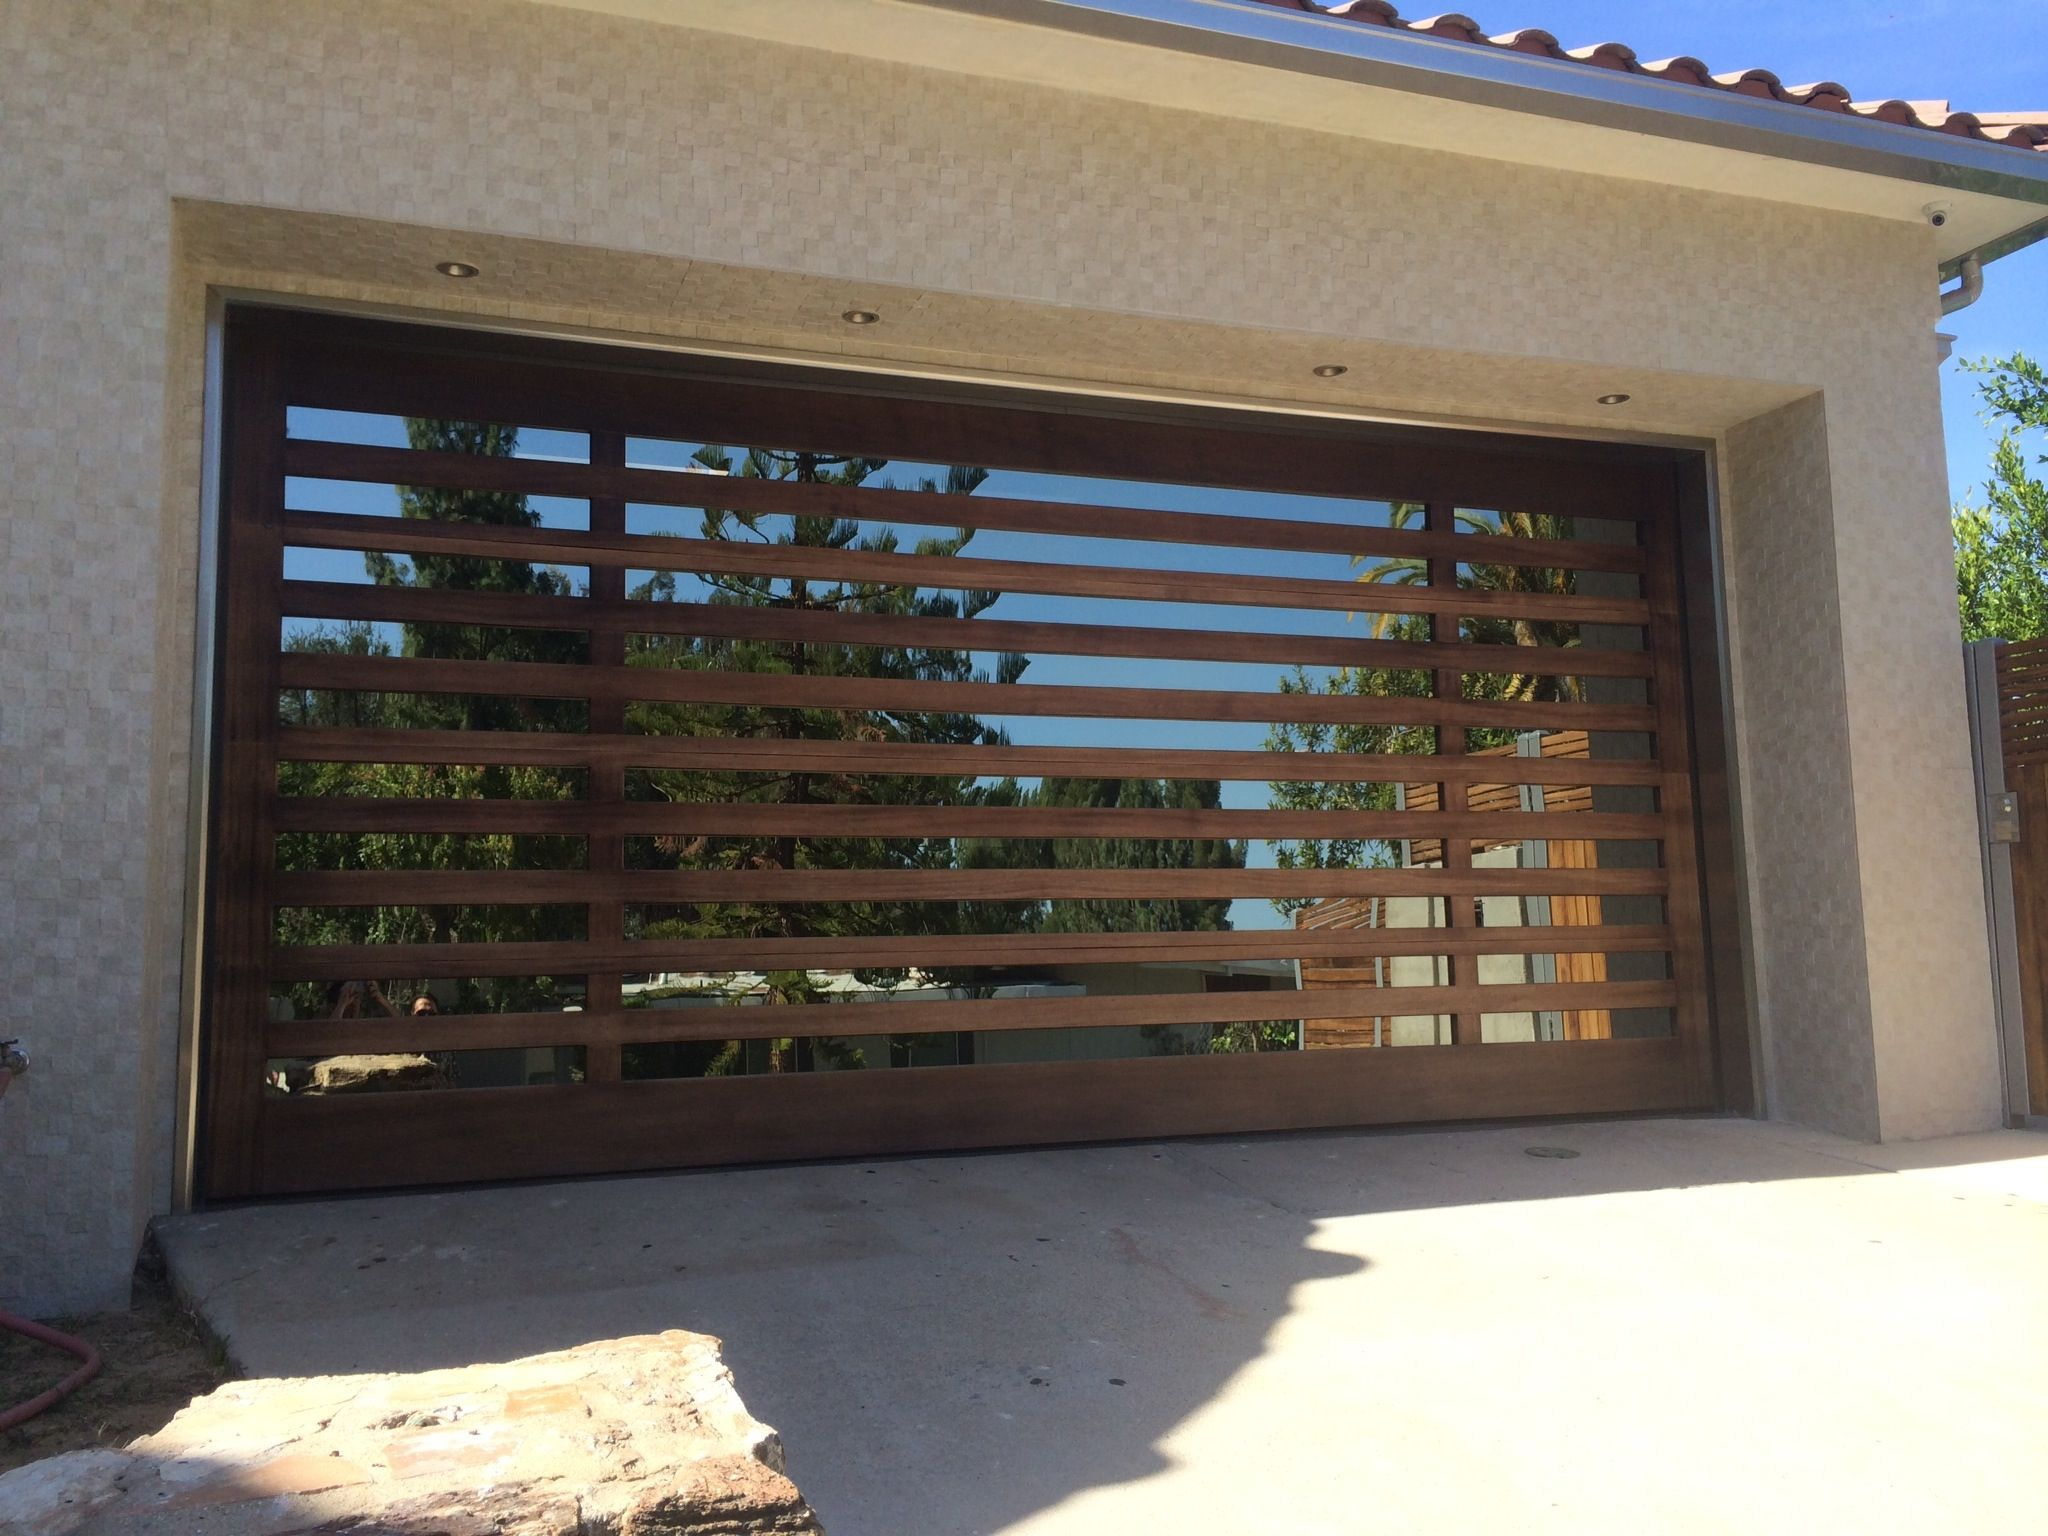 Design A Garage Door eco alternative garage doors 10 custom garage door design with regarding stylish property garage door designs ideas Shining Design Contemporary Garage Doors 16 Super Ideas Custom Modern Wood Door With Privacy Glass Tungsten